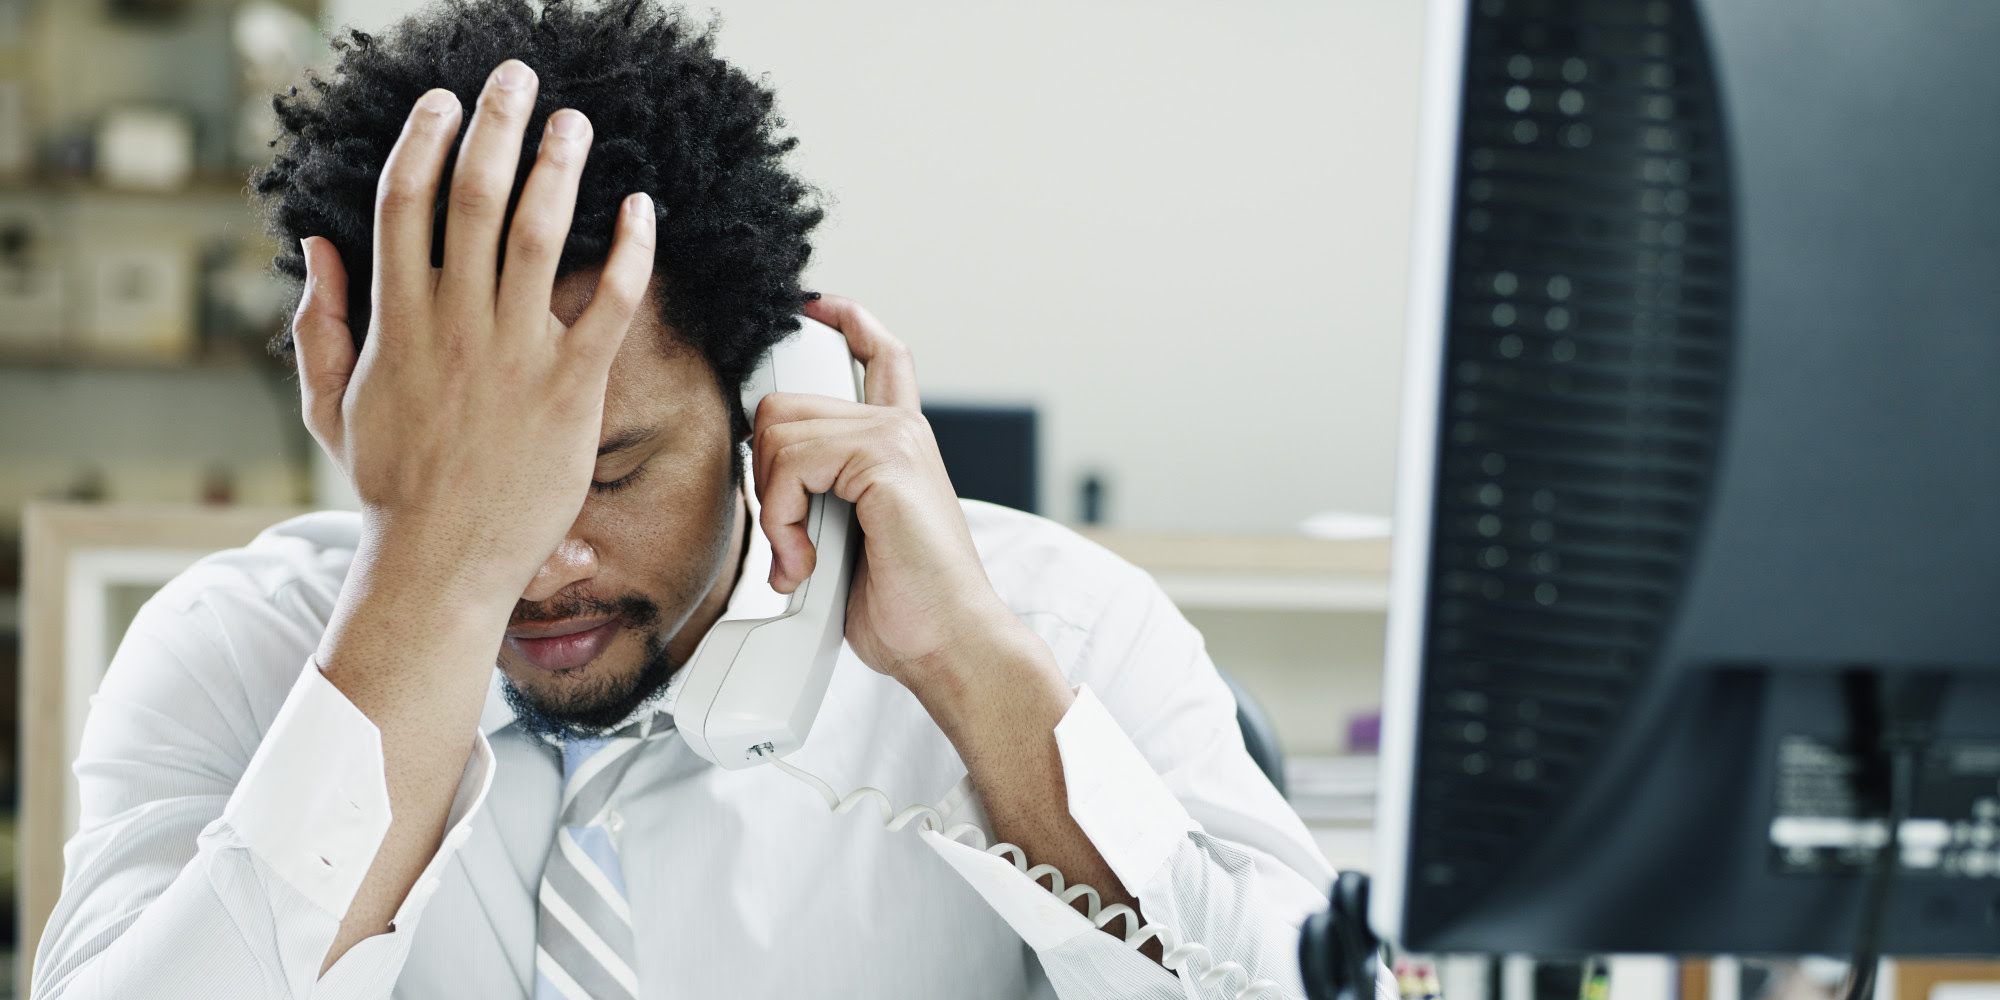 Stress At Work On The Increase, Claims CIPD | HuffPost UK